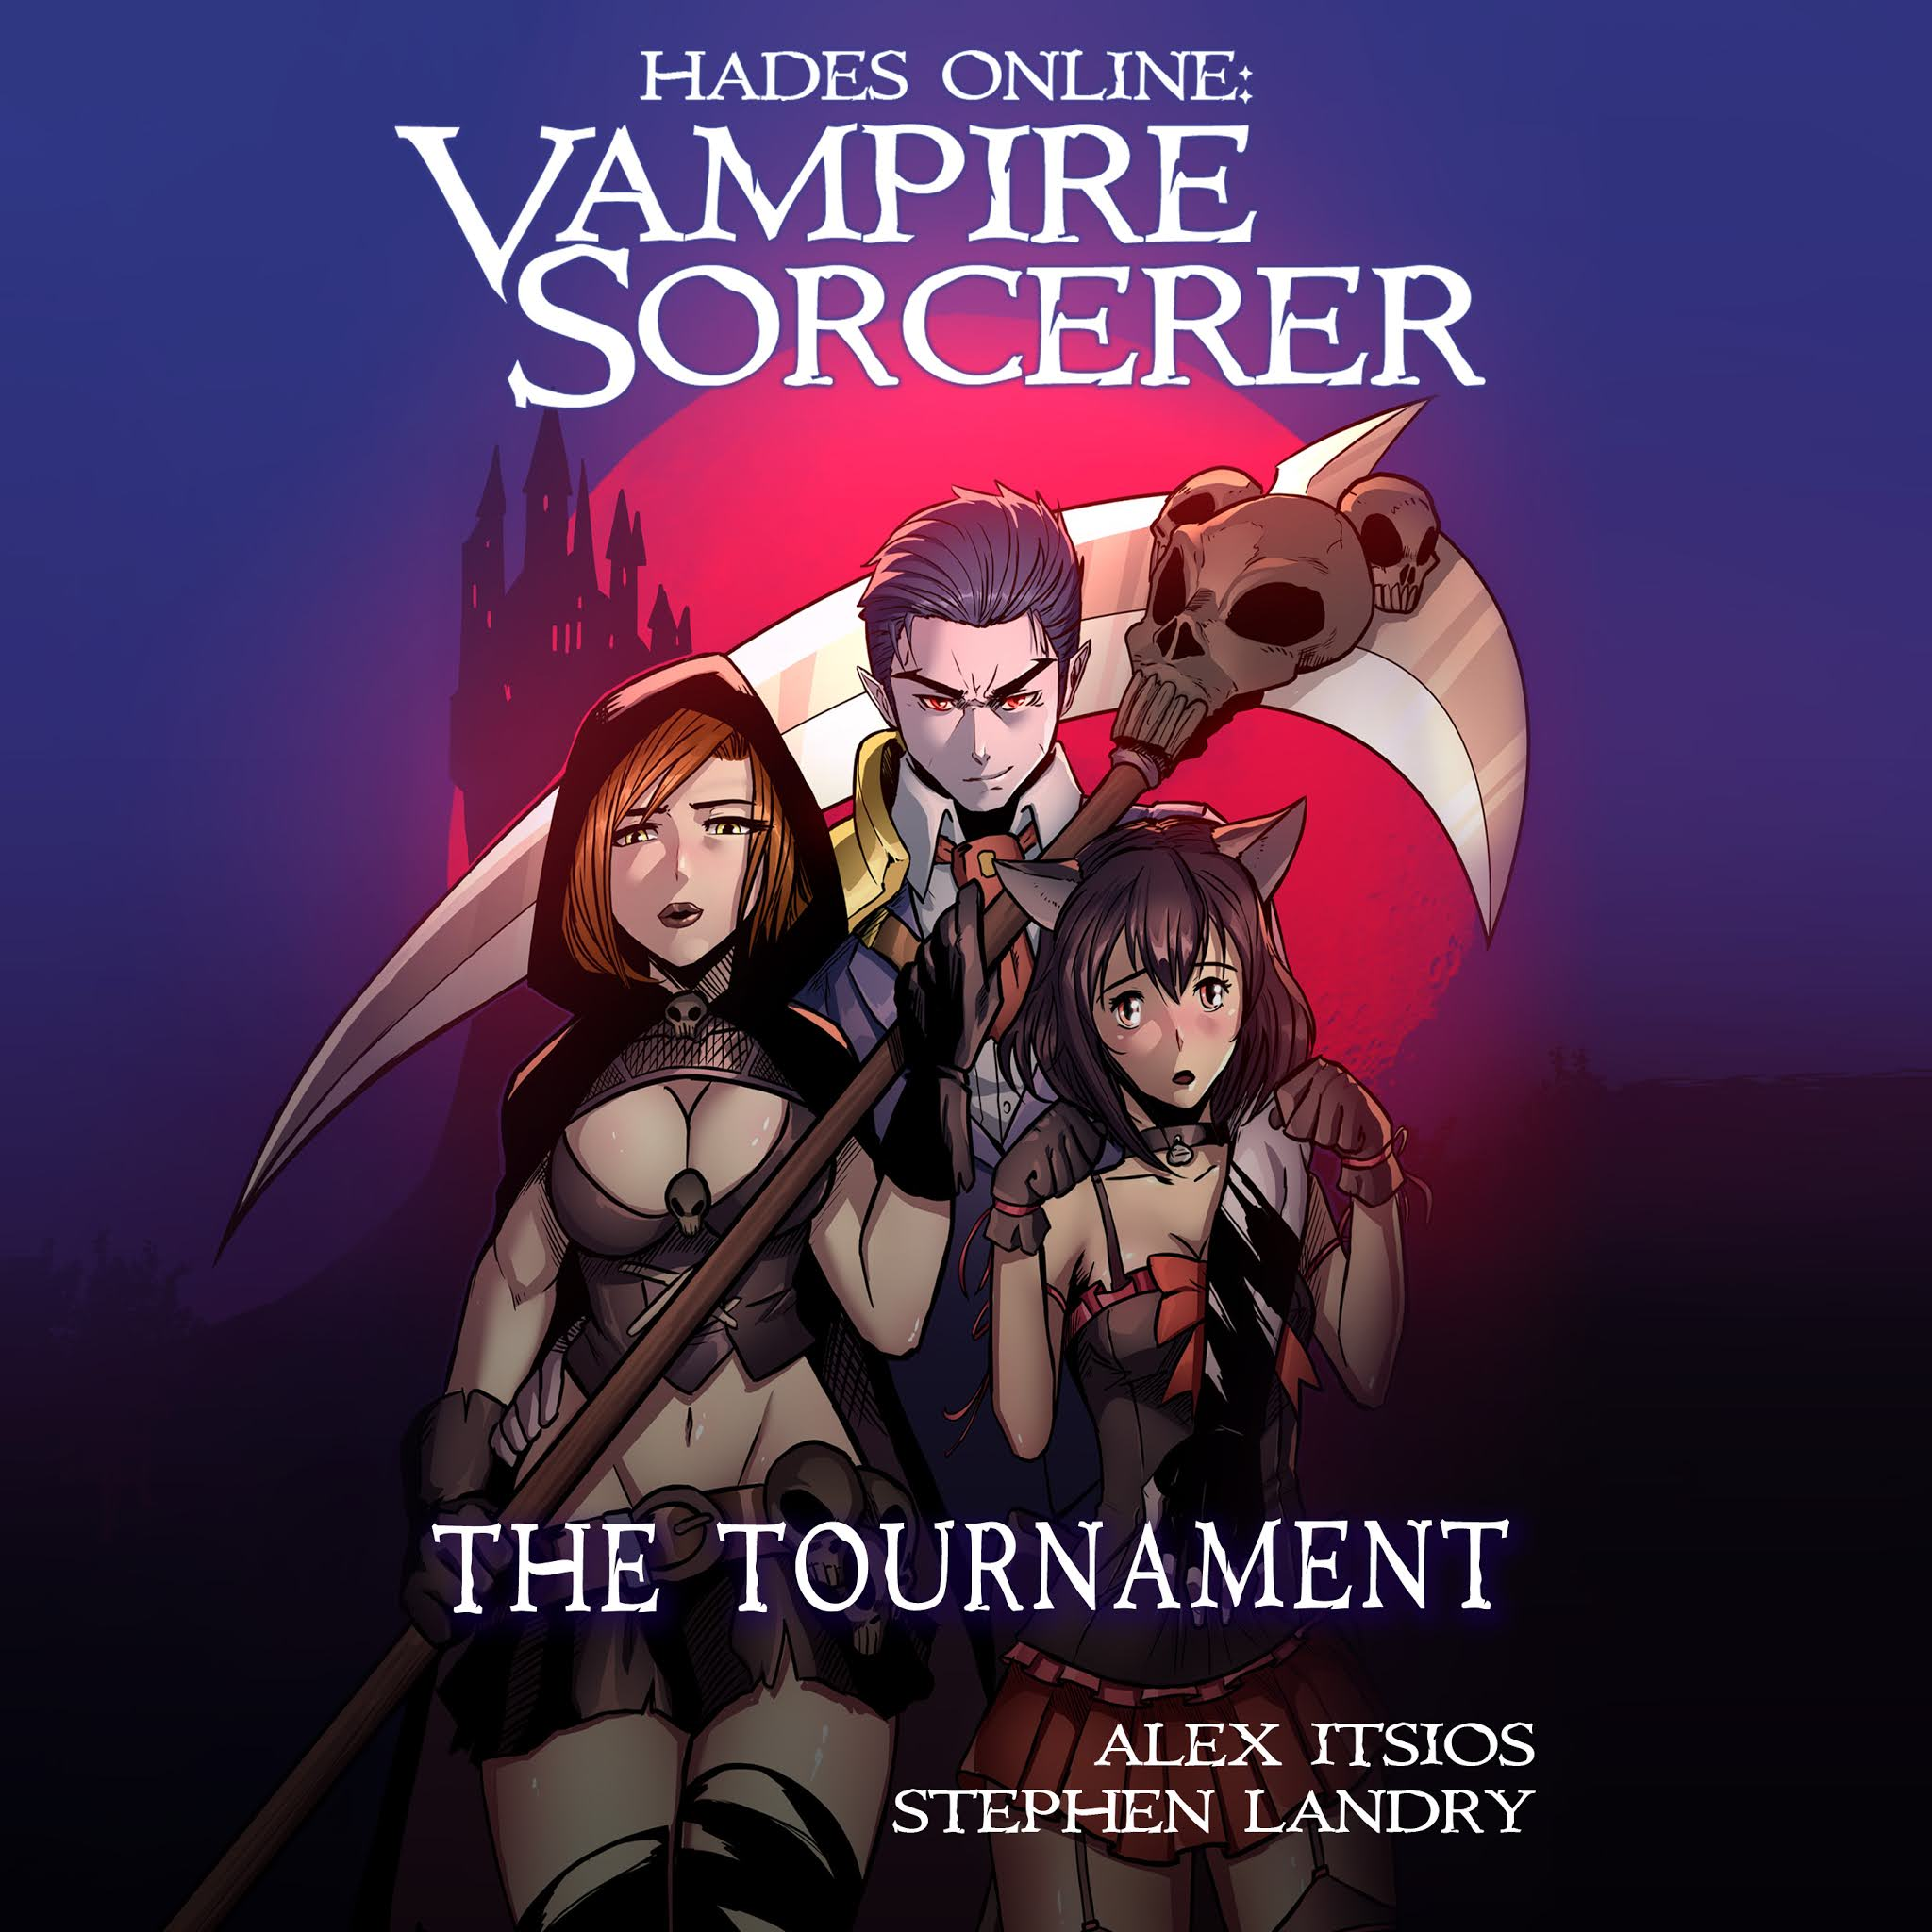 Hades Online: Vampire Sorcerer: The Tournament